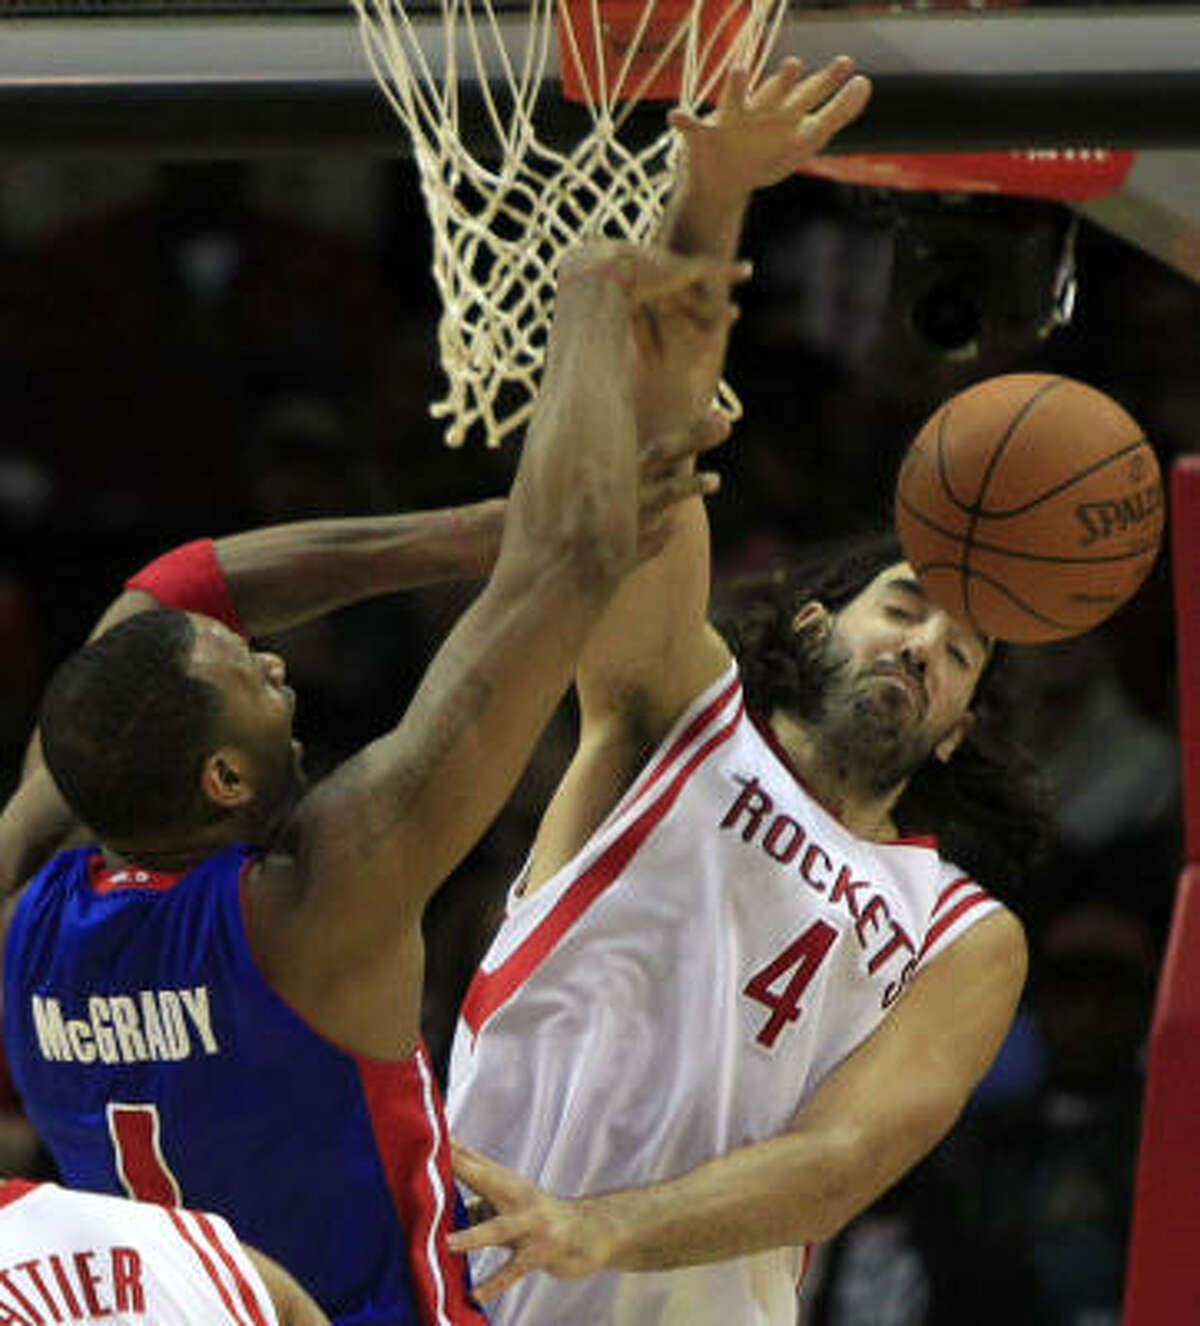 Pistons guard Tracy McGrady goes up for a shot as Rockets power forward Luis Scola defends during Tuesday night's game at Toyota Center.